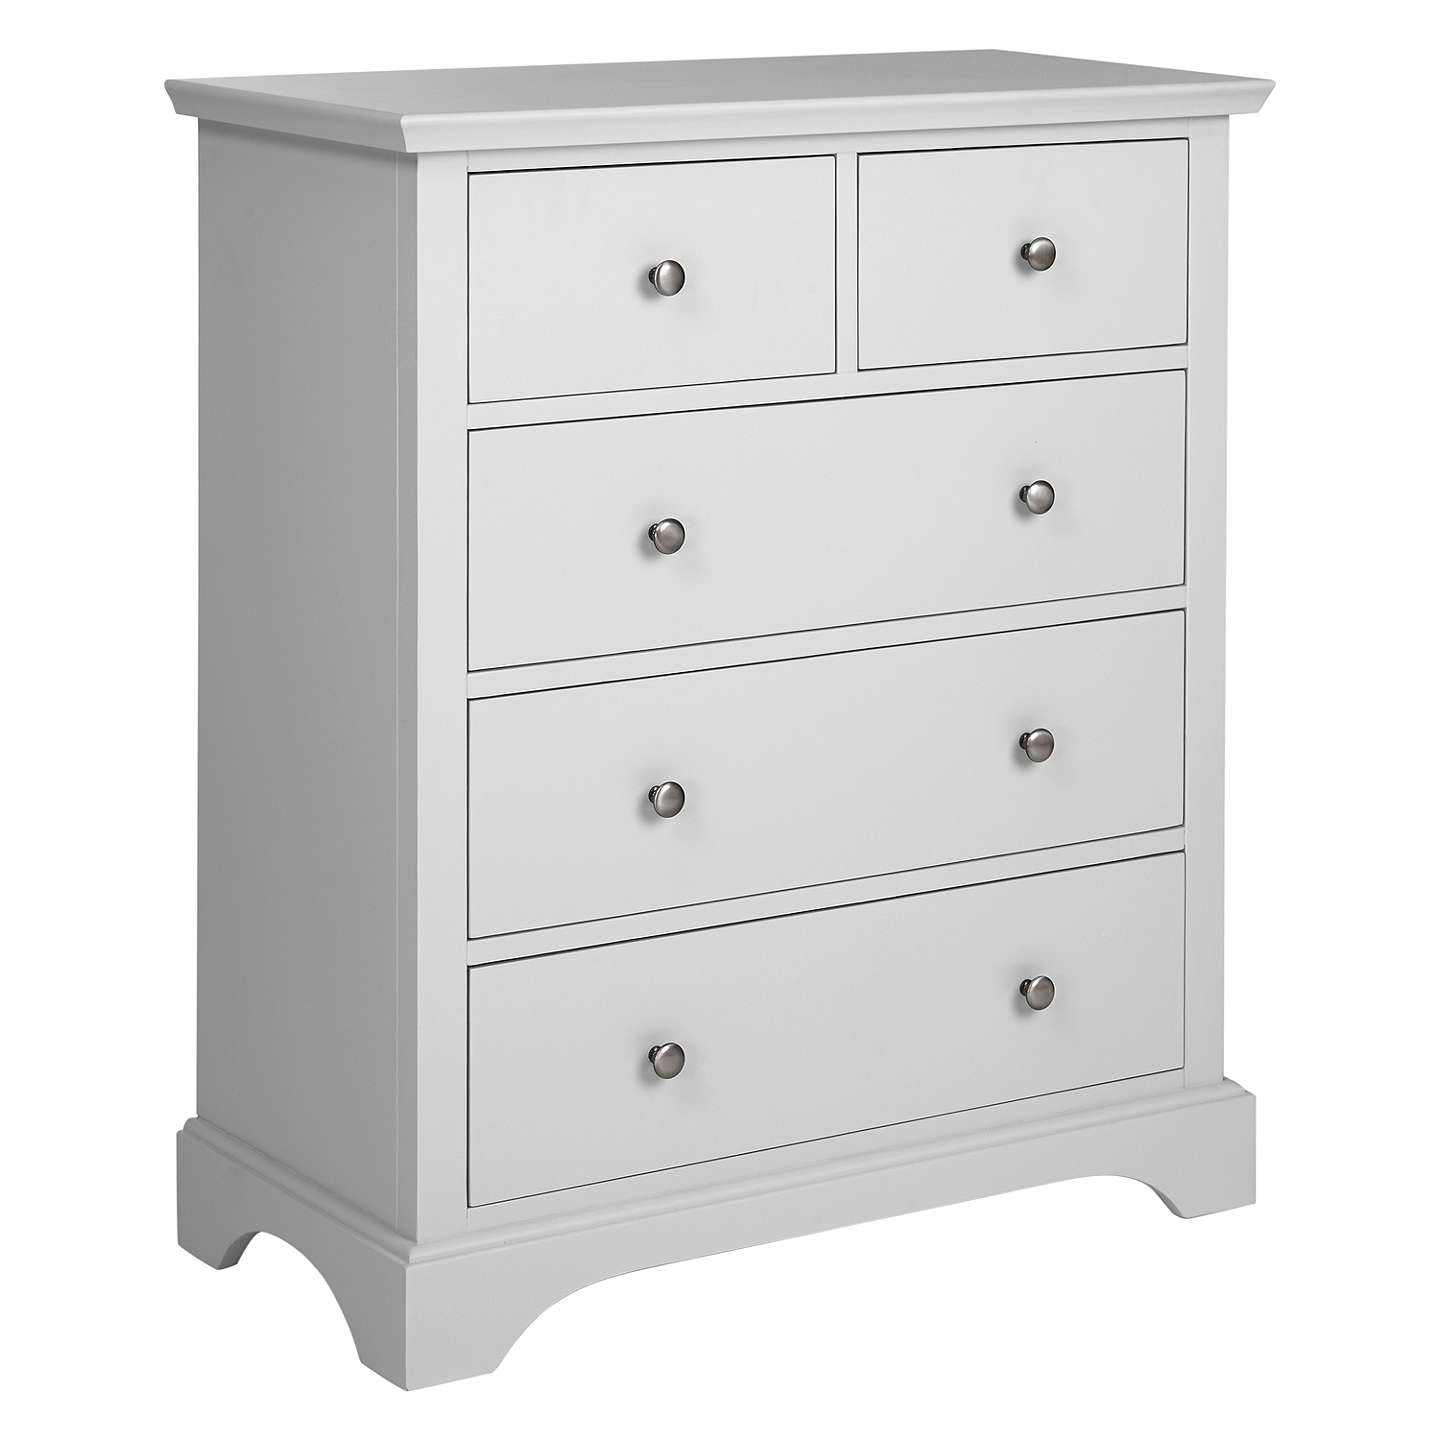 Mayville Cherry 5 Drawer Chest By Homelegance